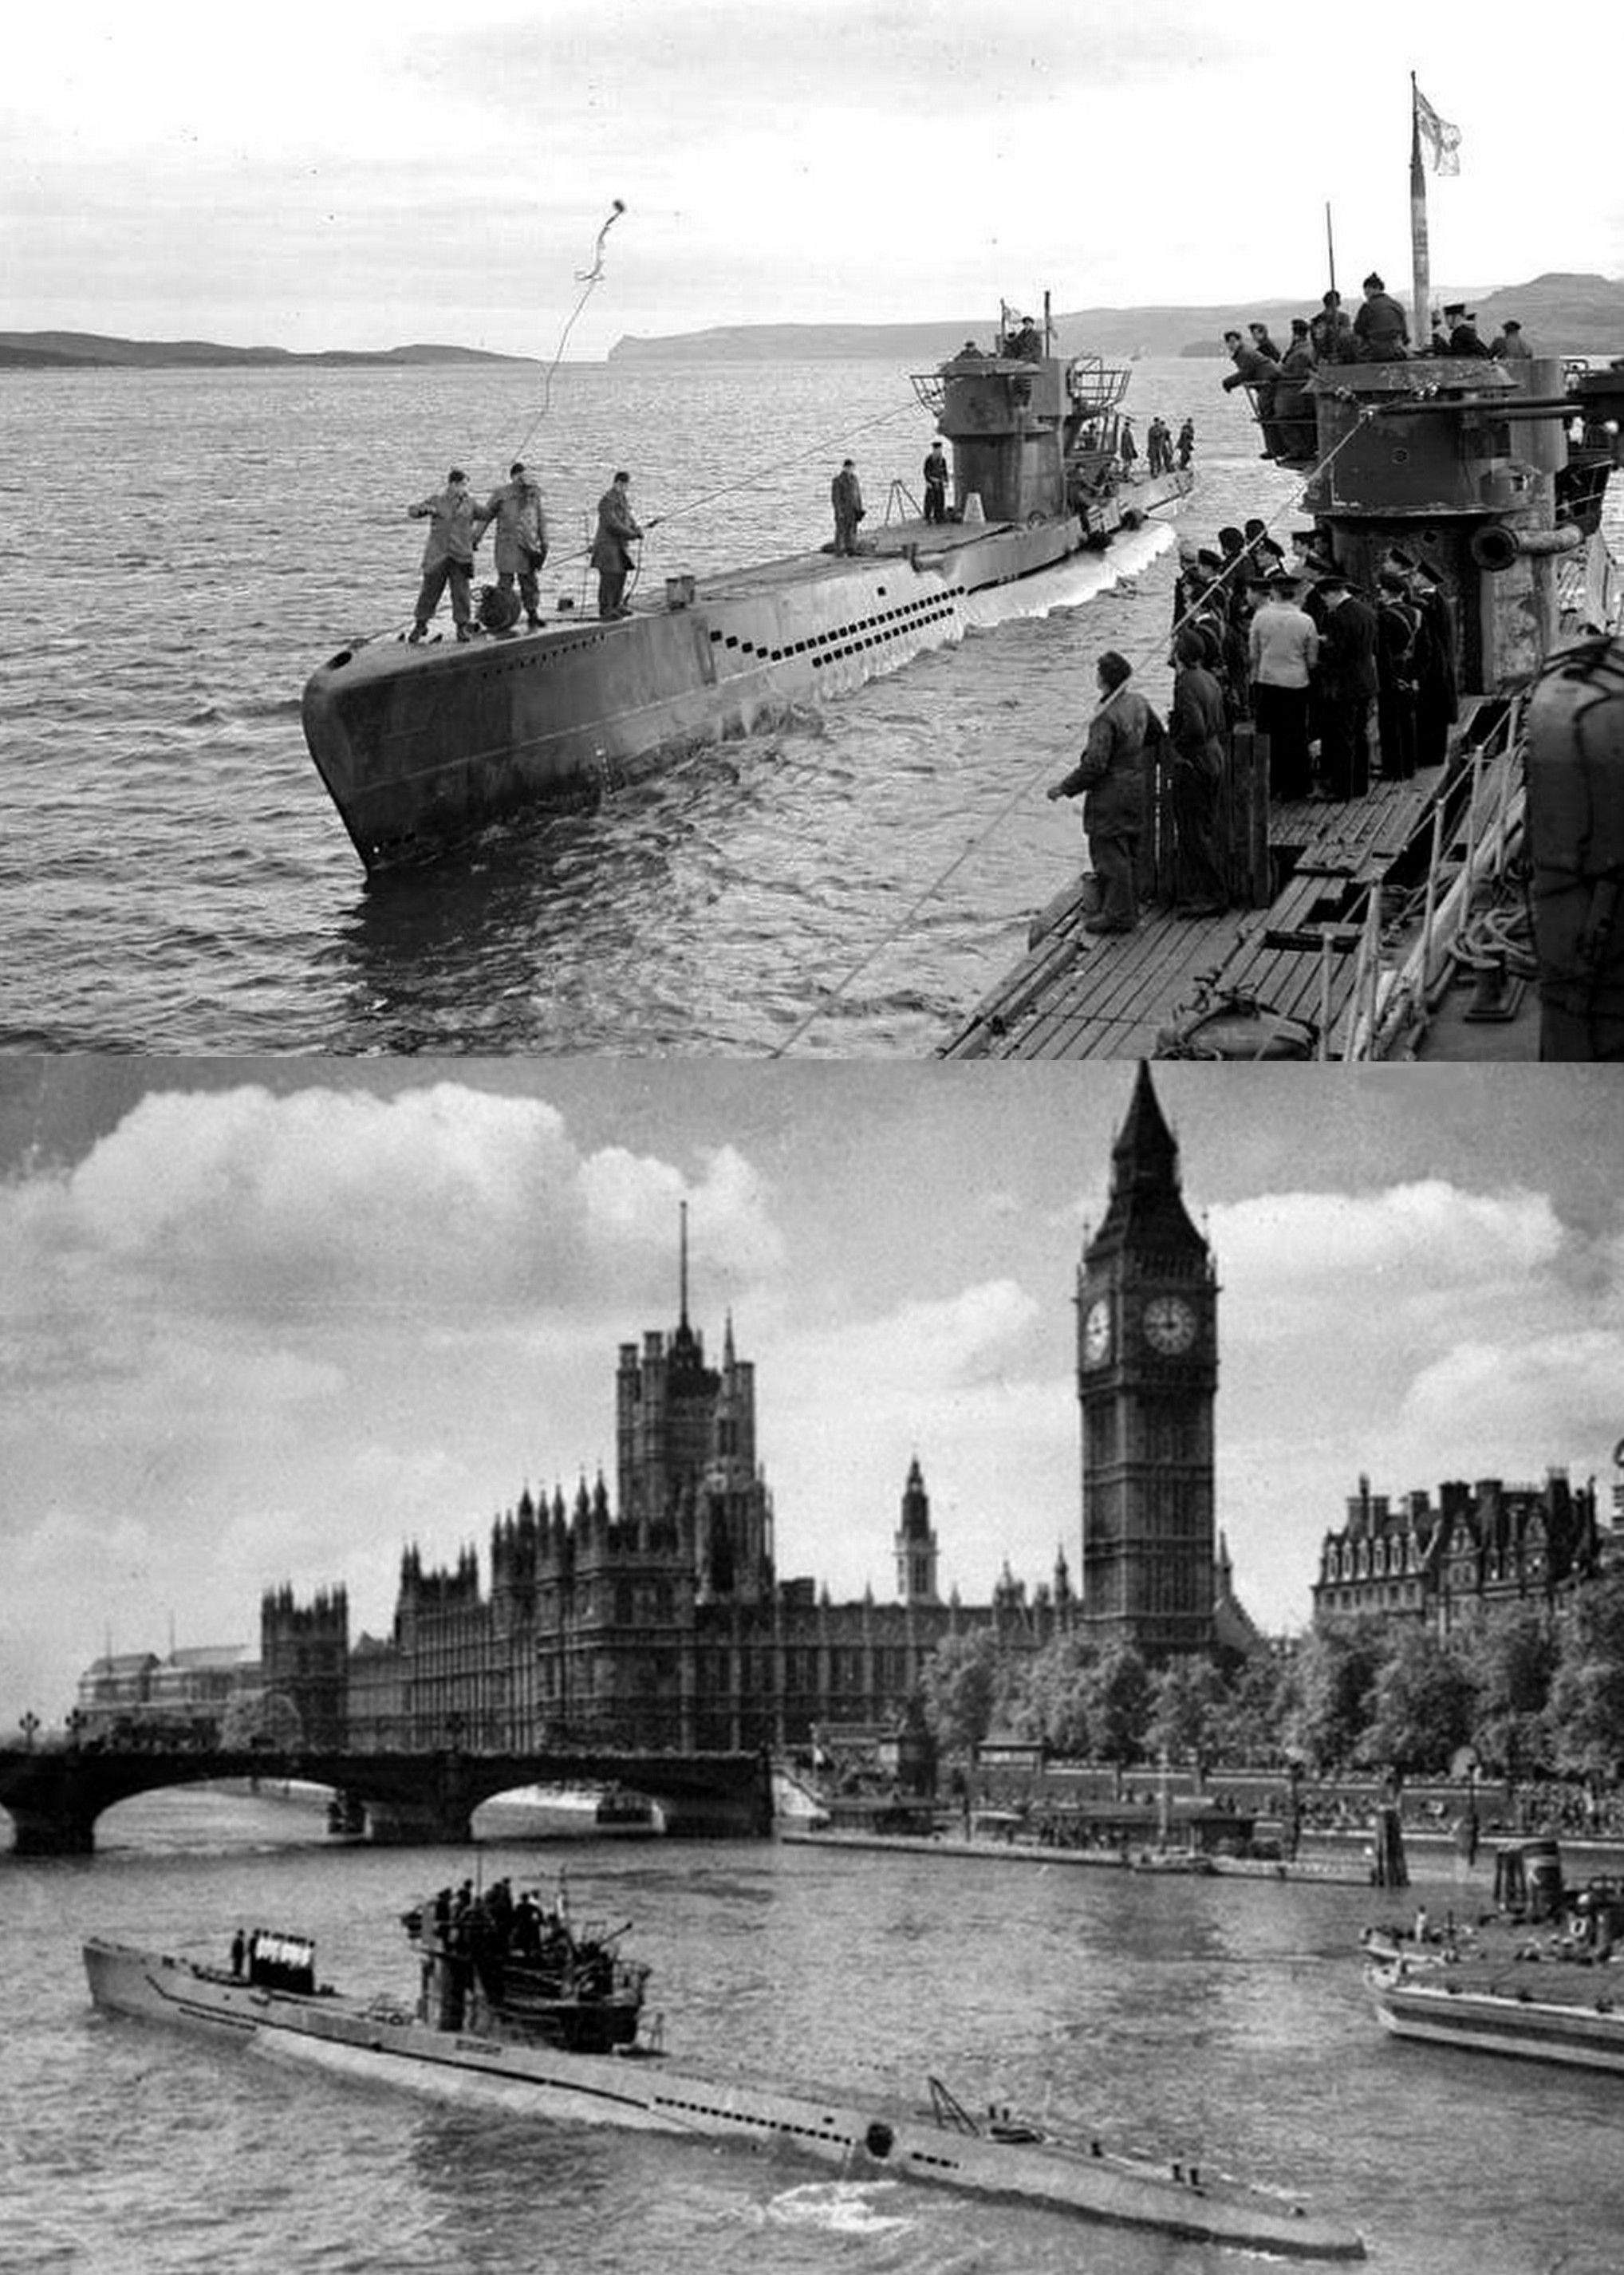 U 236 coming alongside U 826 with the White Ensign flying, for inspection by British naval officers at Loch Eriboll, Scotland. Before surrendering U 826 had been on operational duties for more than five weeks _   A surrendered U-boat in the Thames 1945